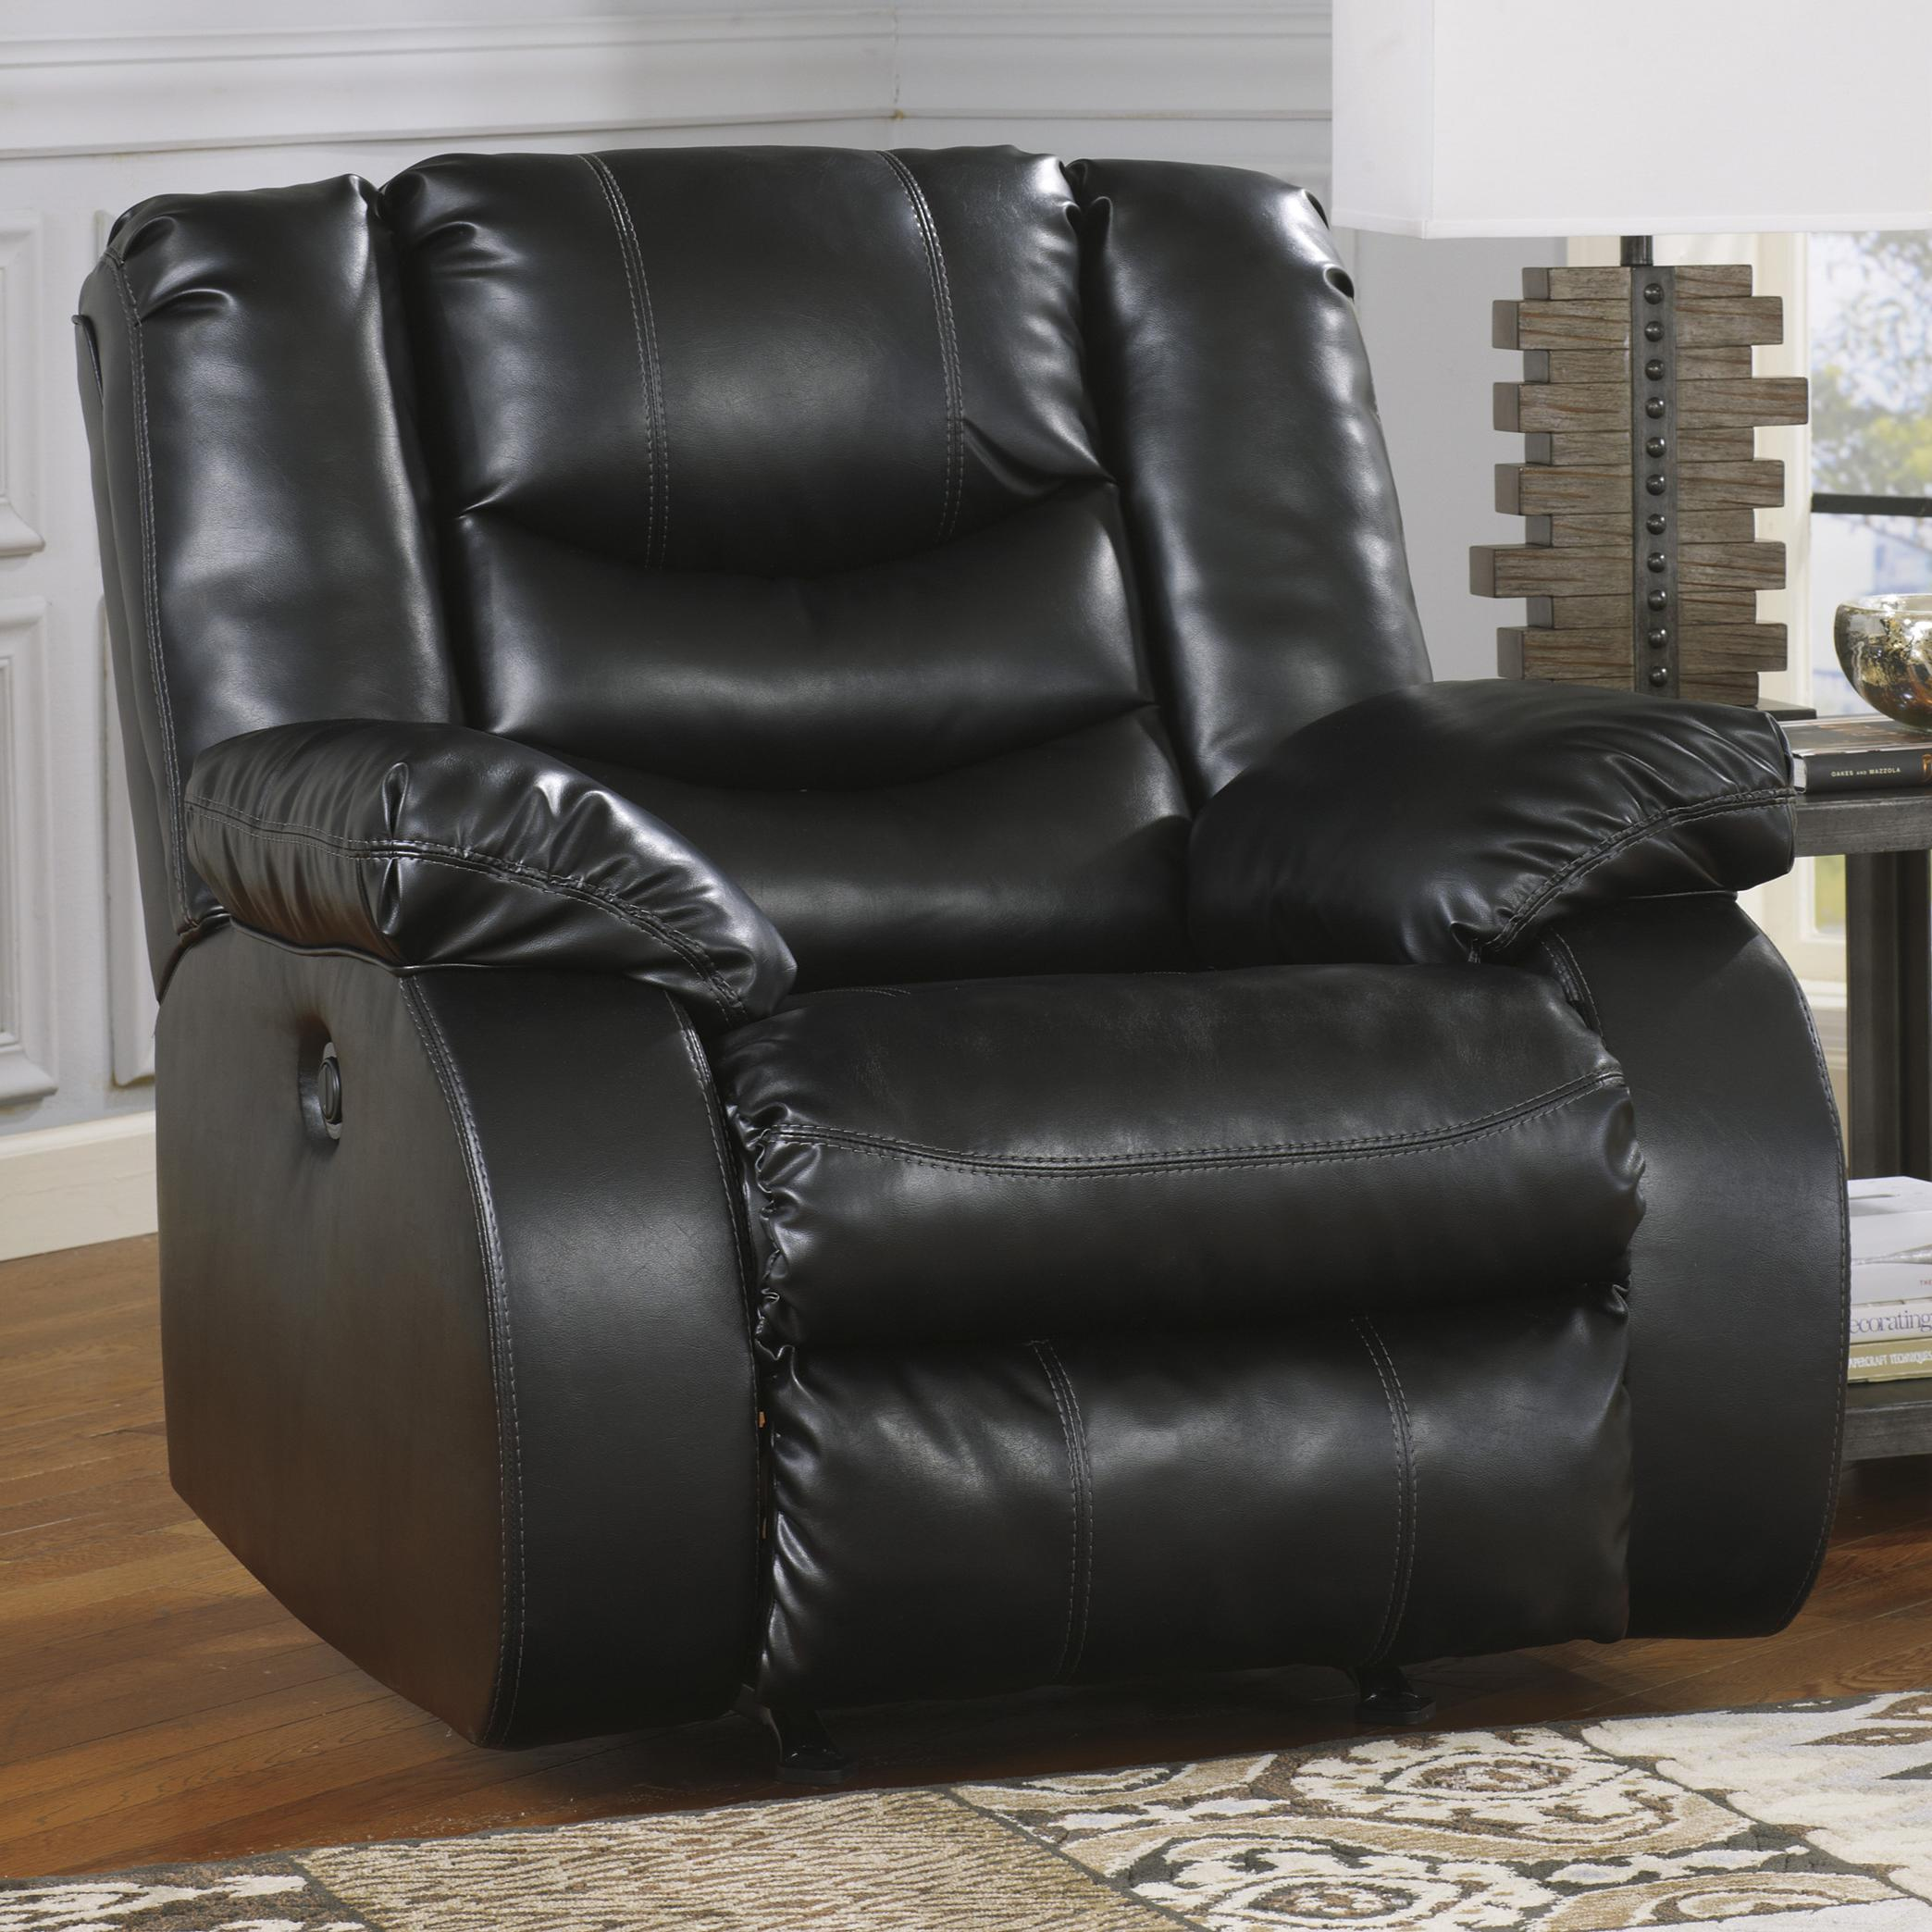 Ashley/Benchcraft Linebacker DuraBlend - Black Rocker Recliner - Item Number: 9520225